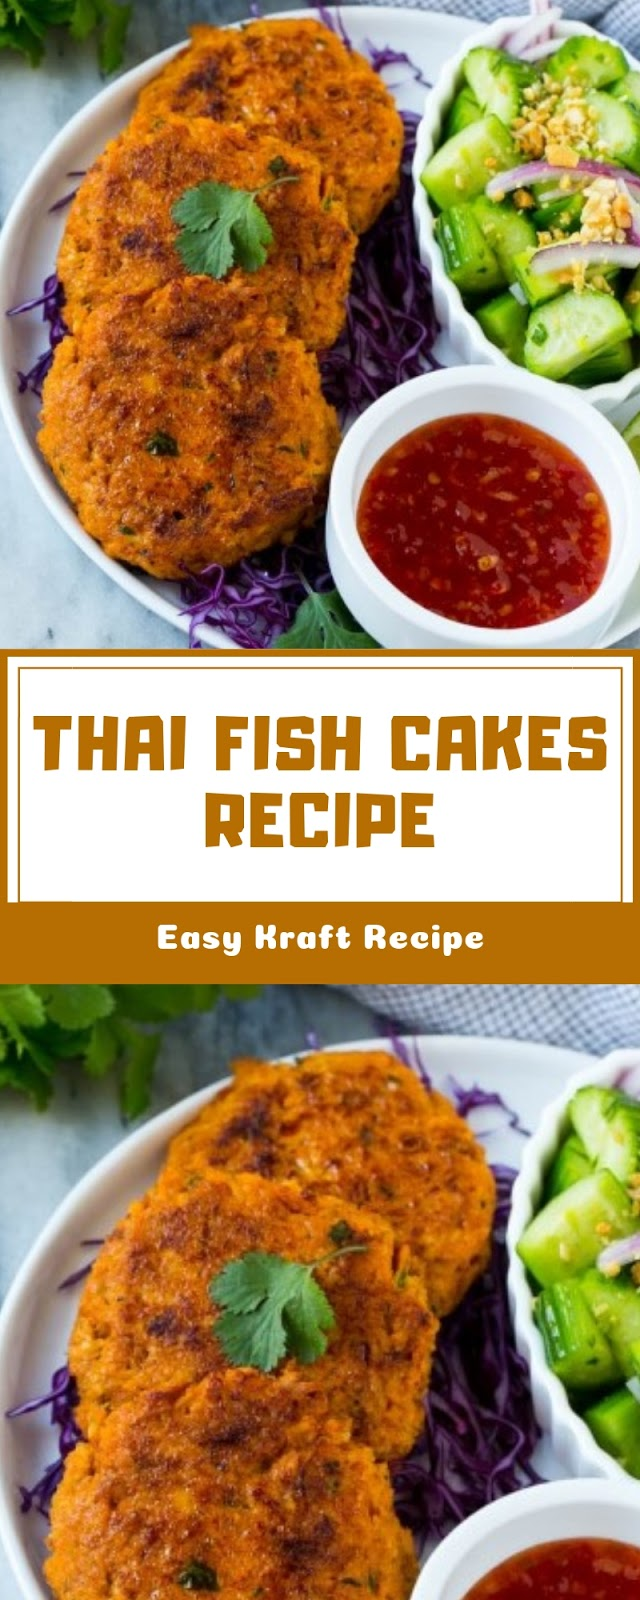 THAI FISH CAKES RECIPE